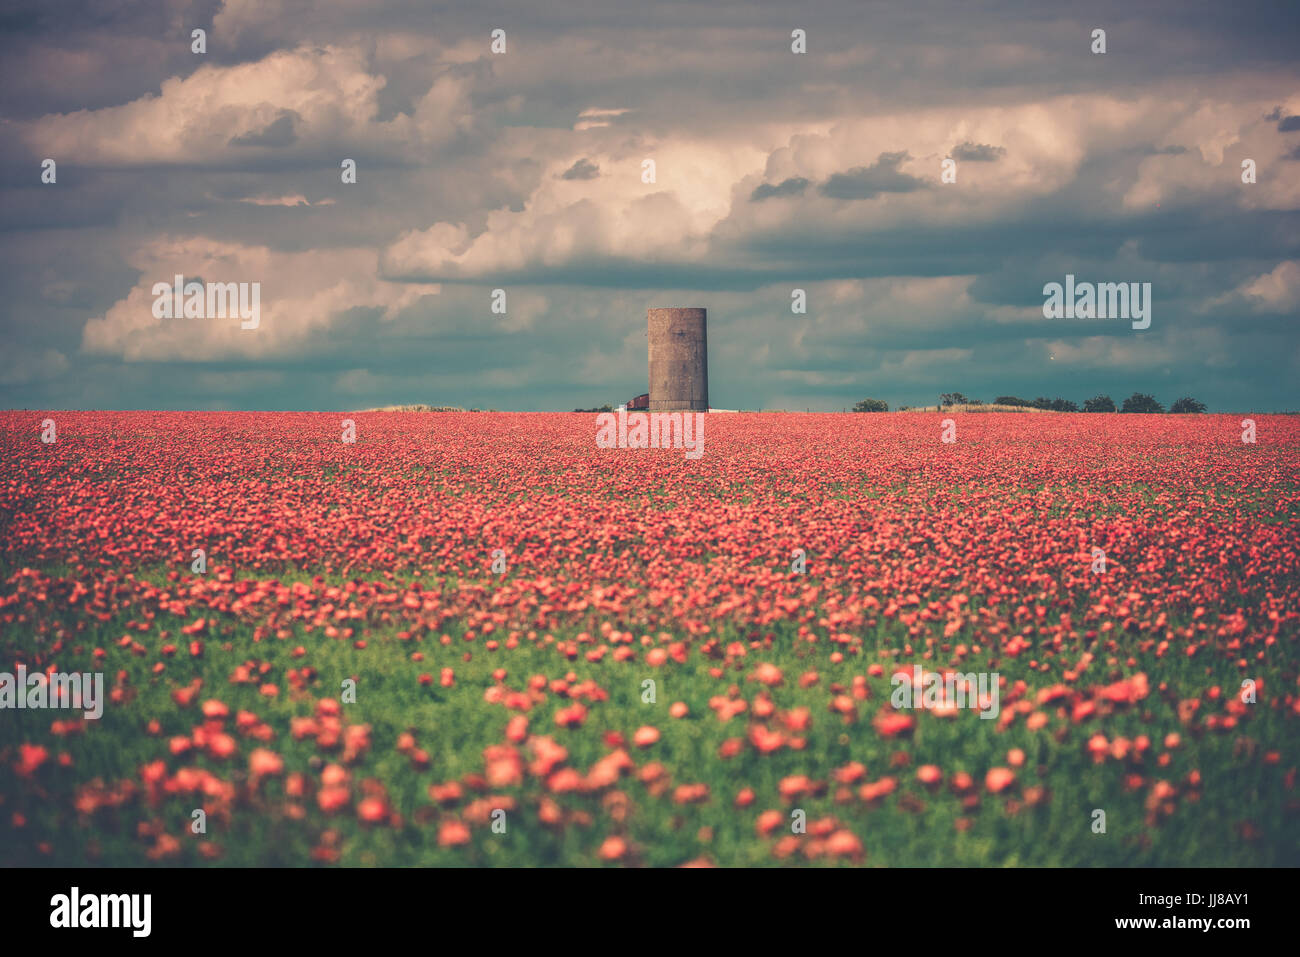 Red poppies in a field in England. A large field of red poppies at golden hour to catch the golden light and sunset Stock Photo